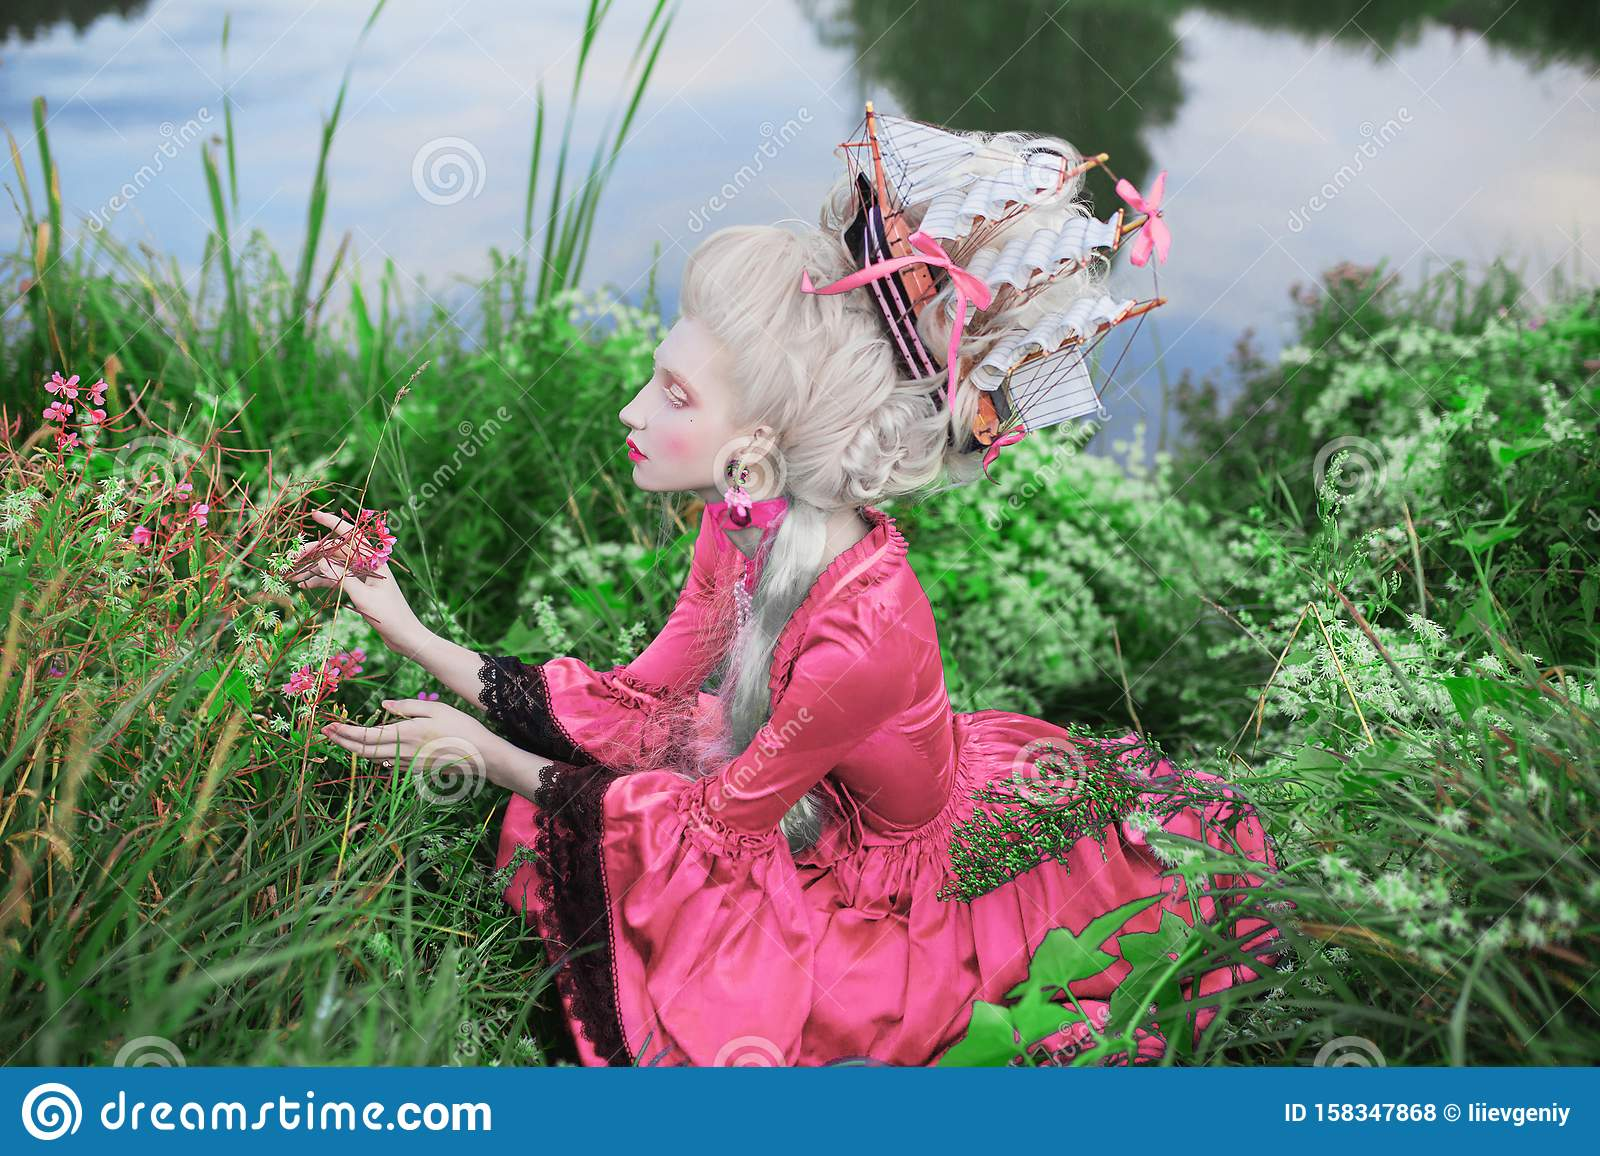 Renaissance princess with blonde hair. Fairytale rococo queen with ship in hairstyle on nature background. Rococo queen in pink